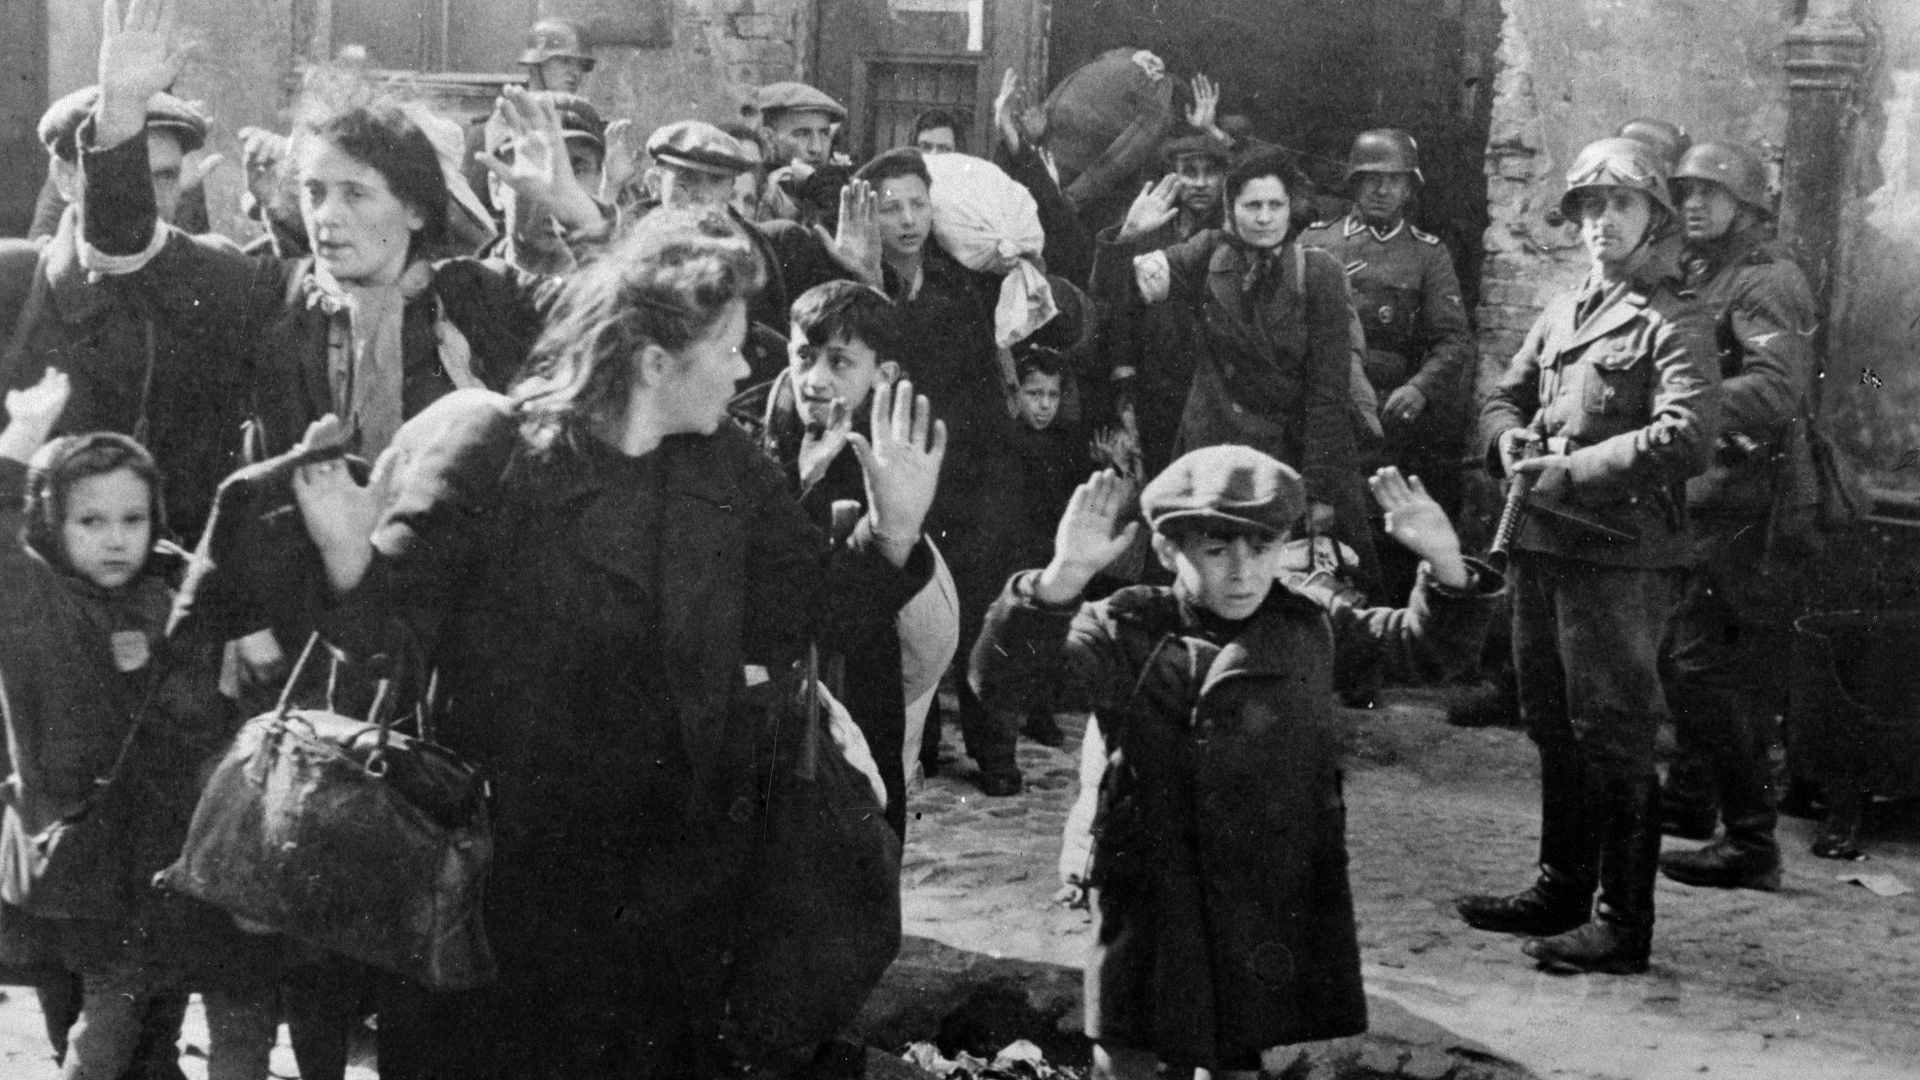 Families being taken out of their house by force of the Germans, in the ghetto of Warsaw, Poland, 1943. (Credit: Roger Viollet Collection/Getty Images)